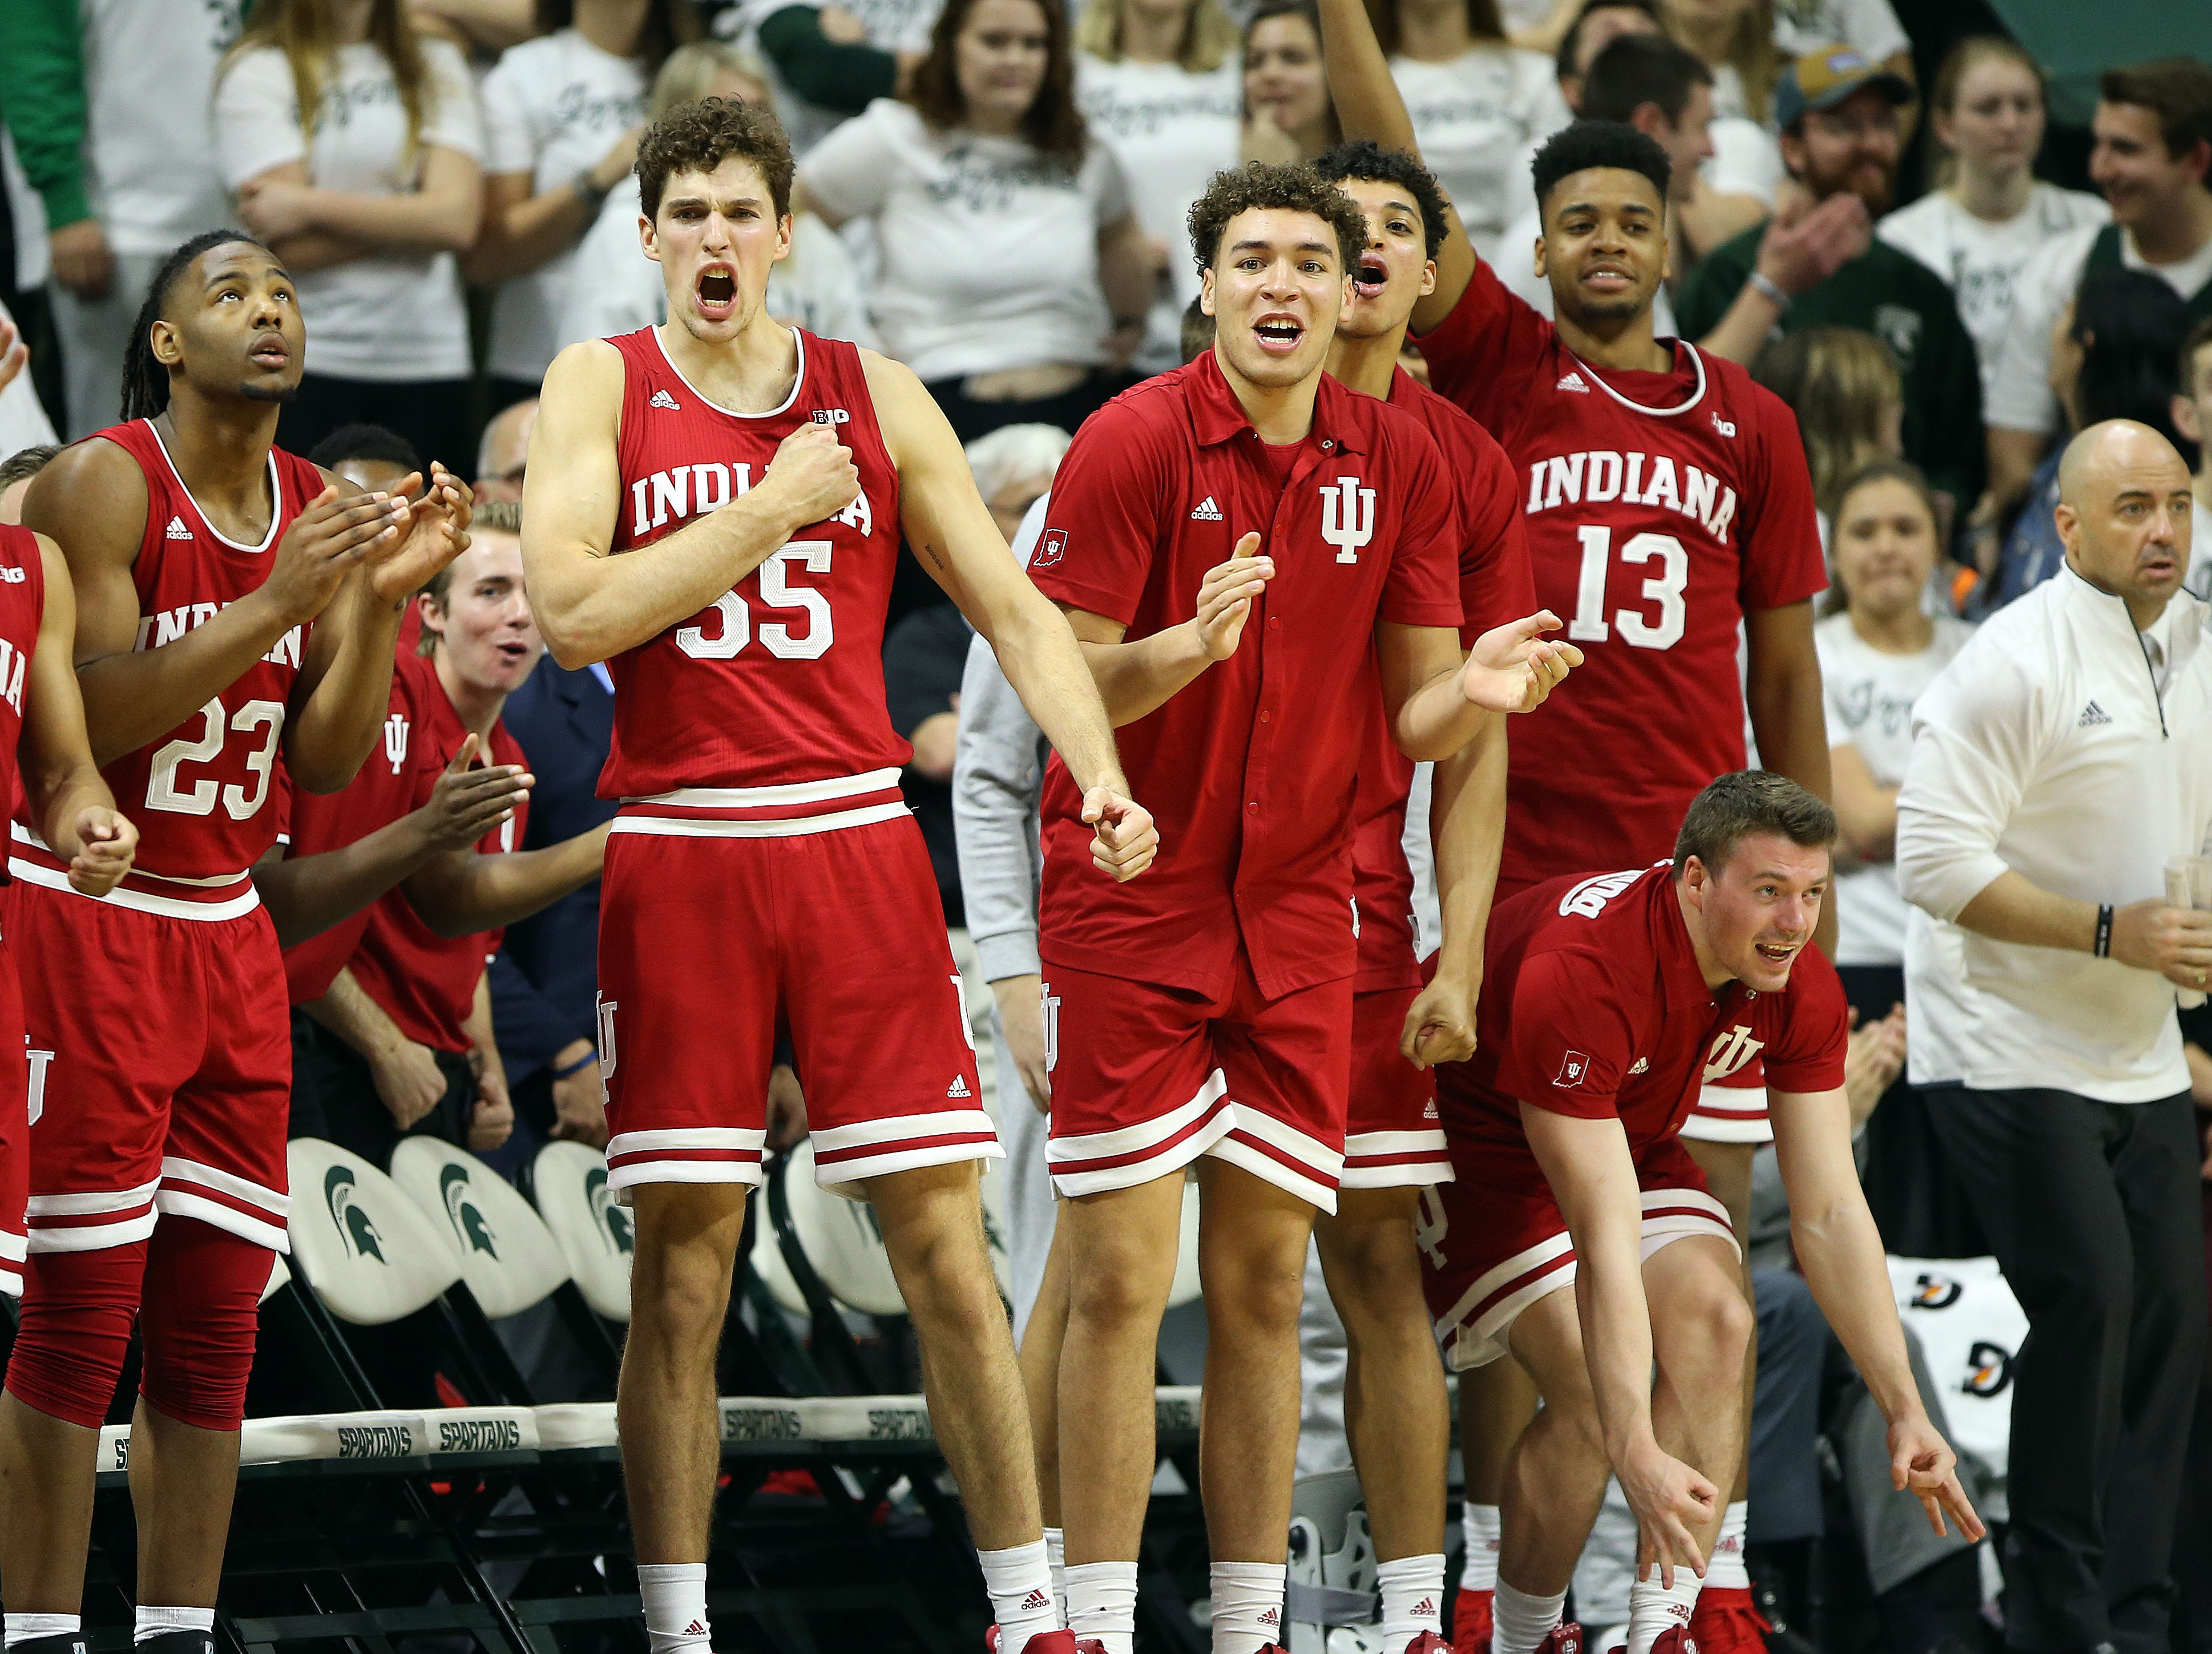 Indiana Hoosiers bench celebrate the game victory over Michigan State Spartans at the Breslin Center.